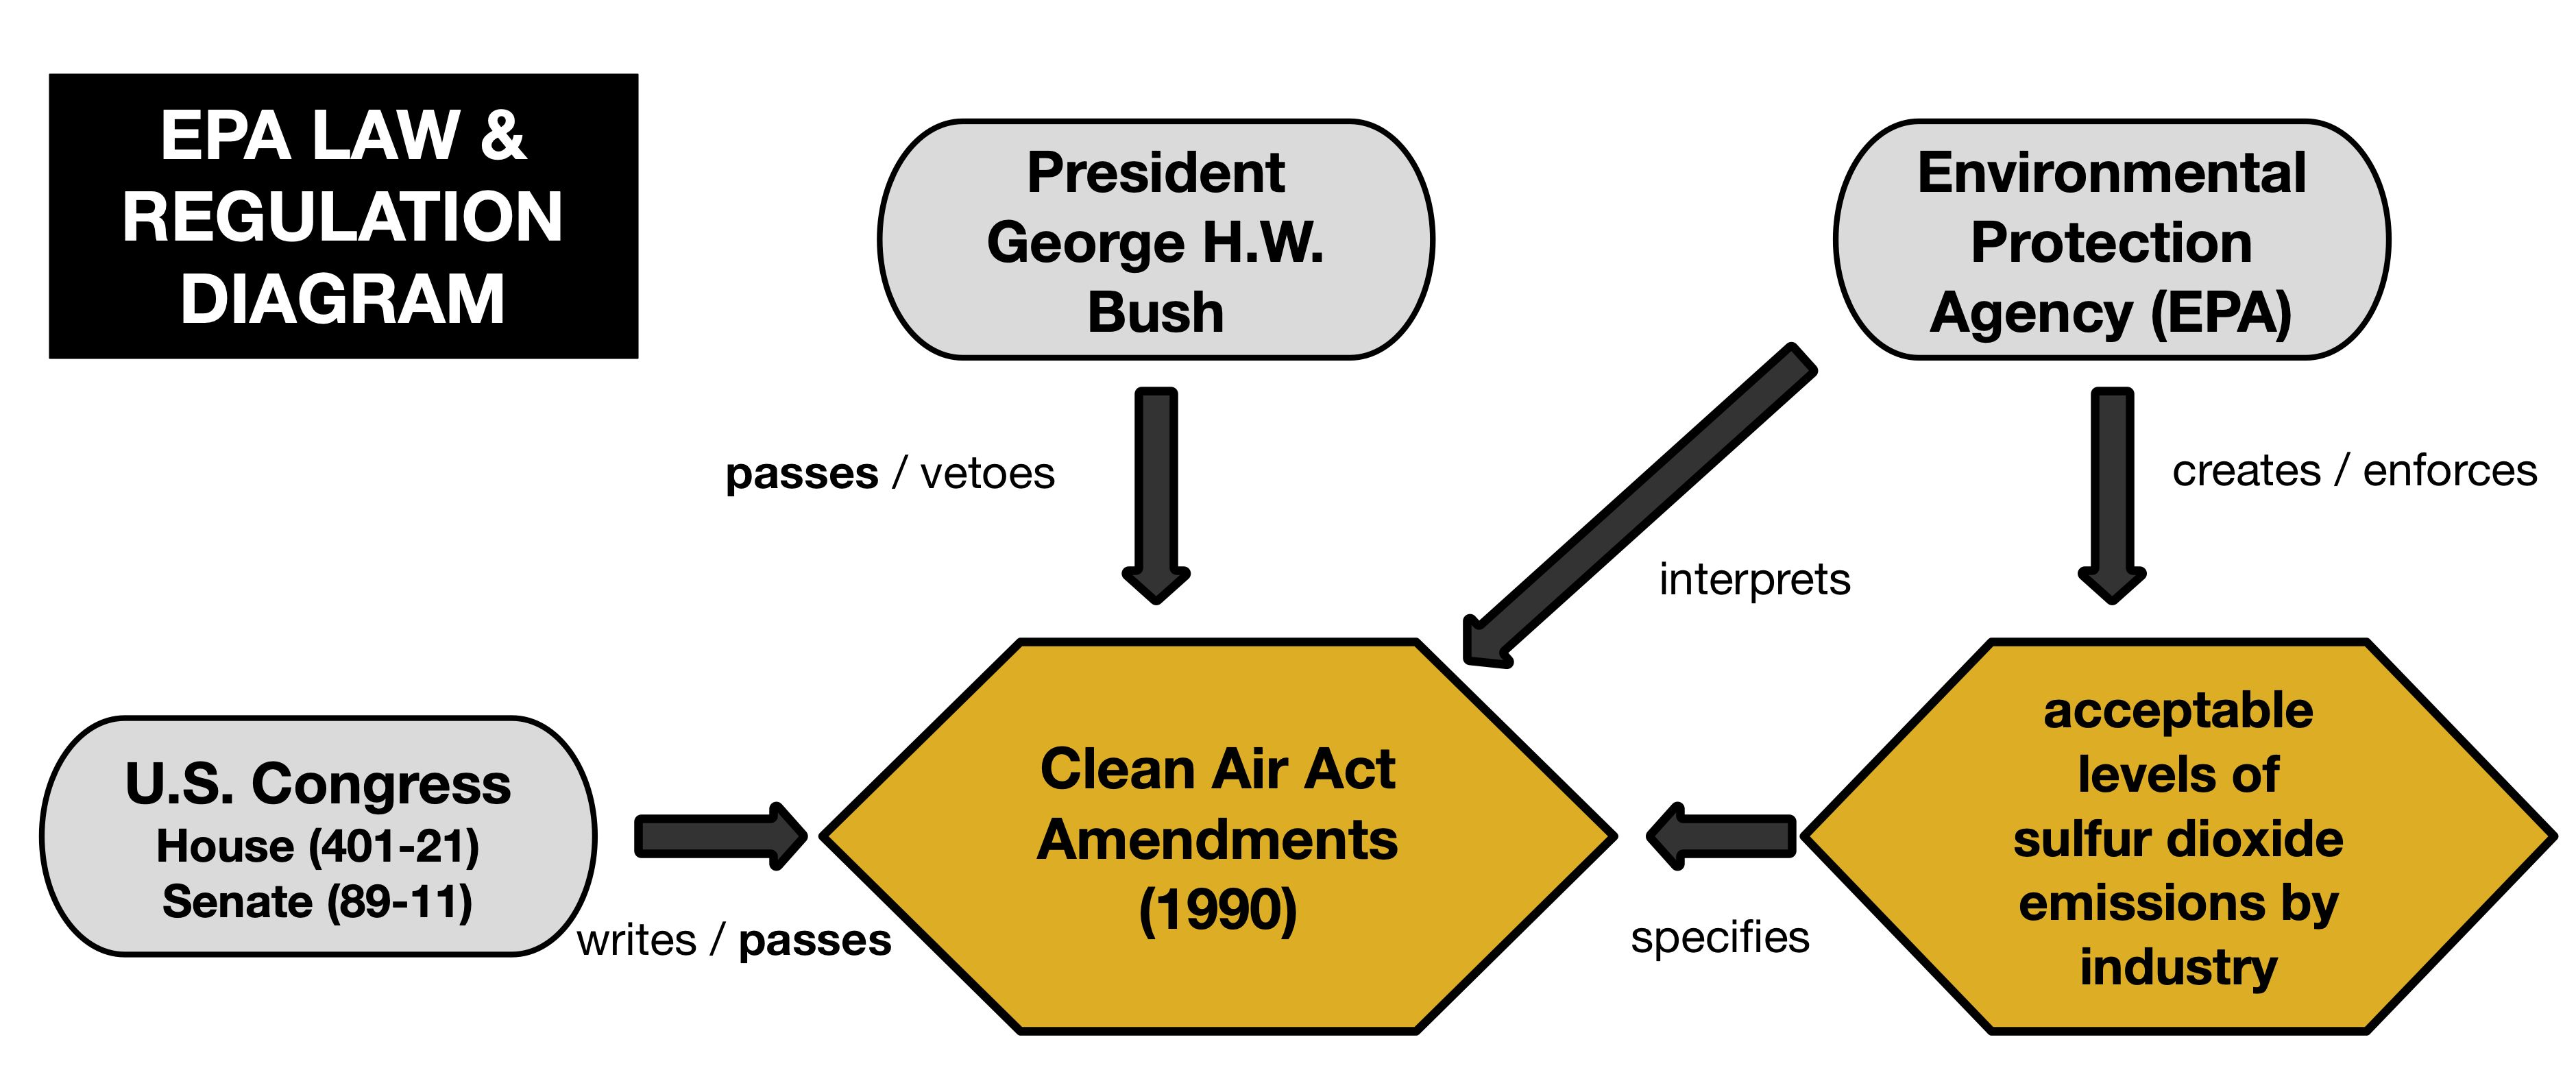 A diagram showing the relationship between branches of government, laws, and regulations